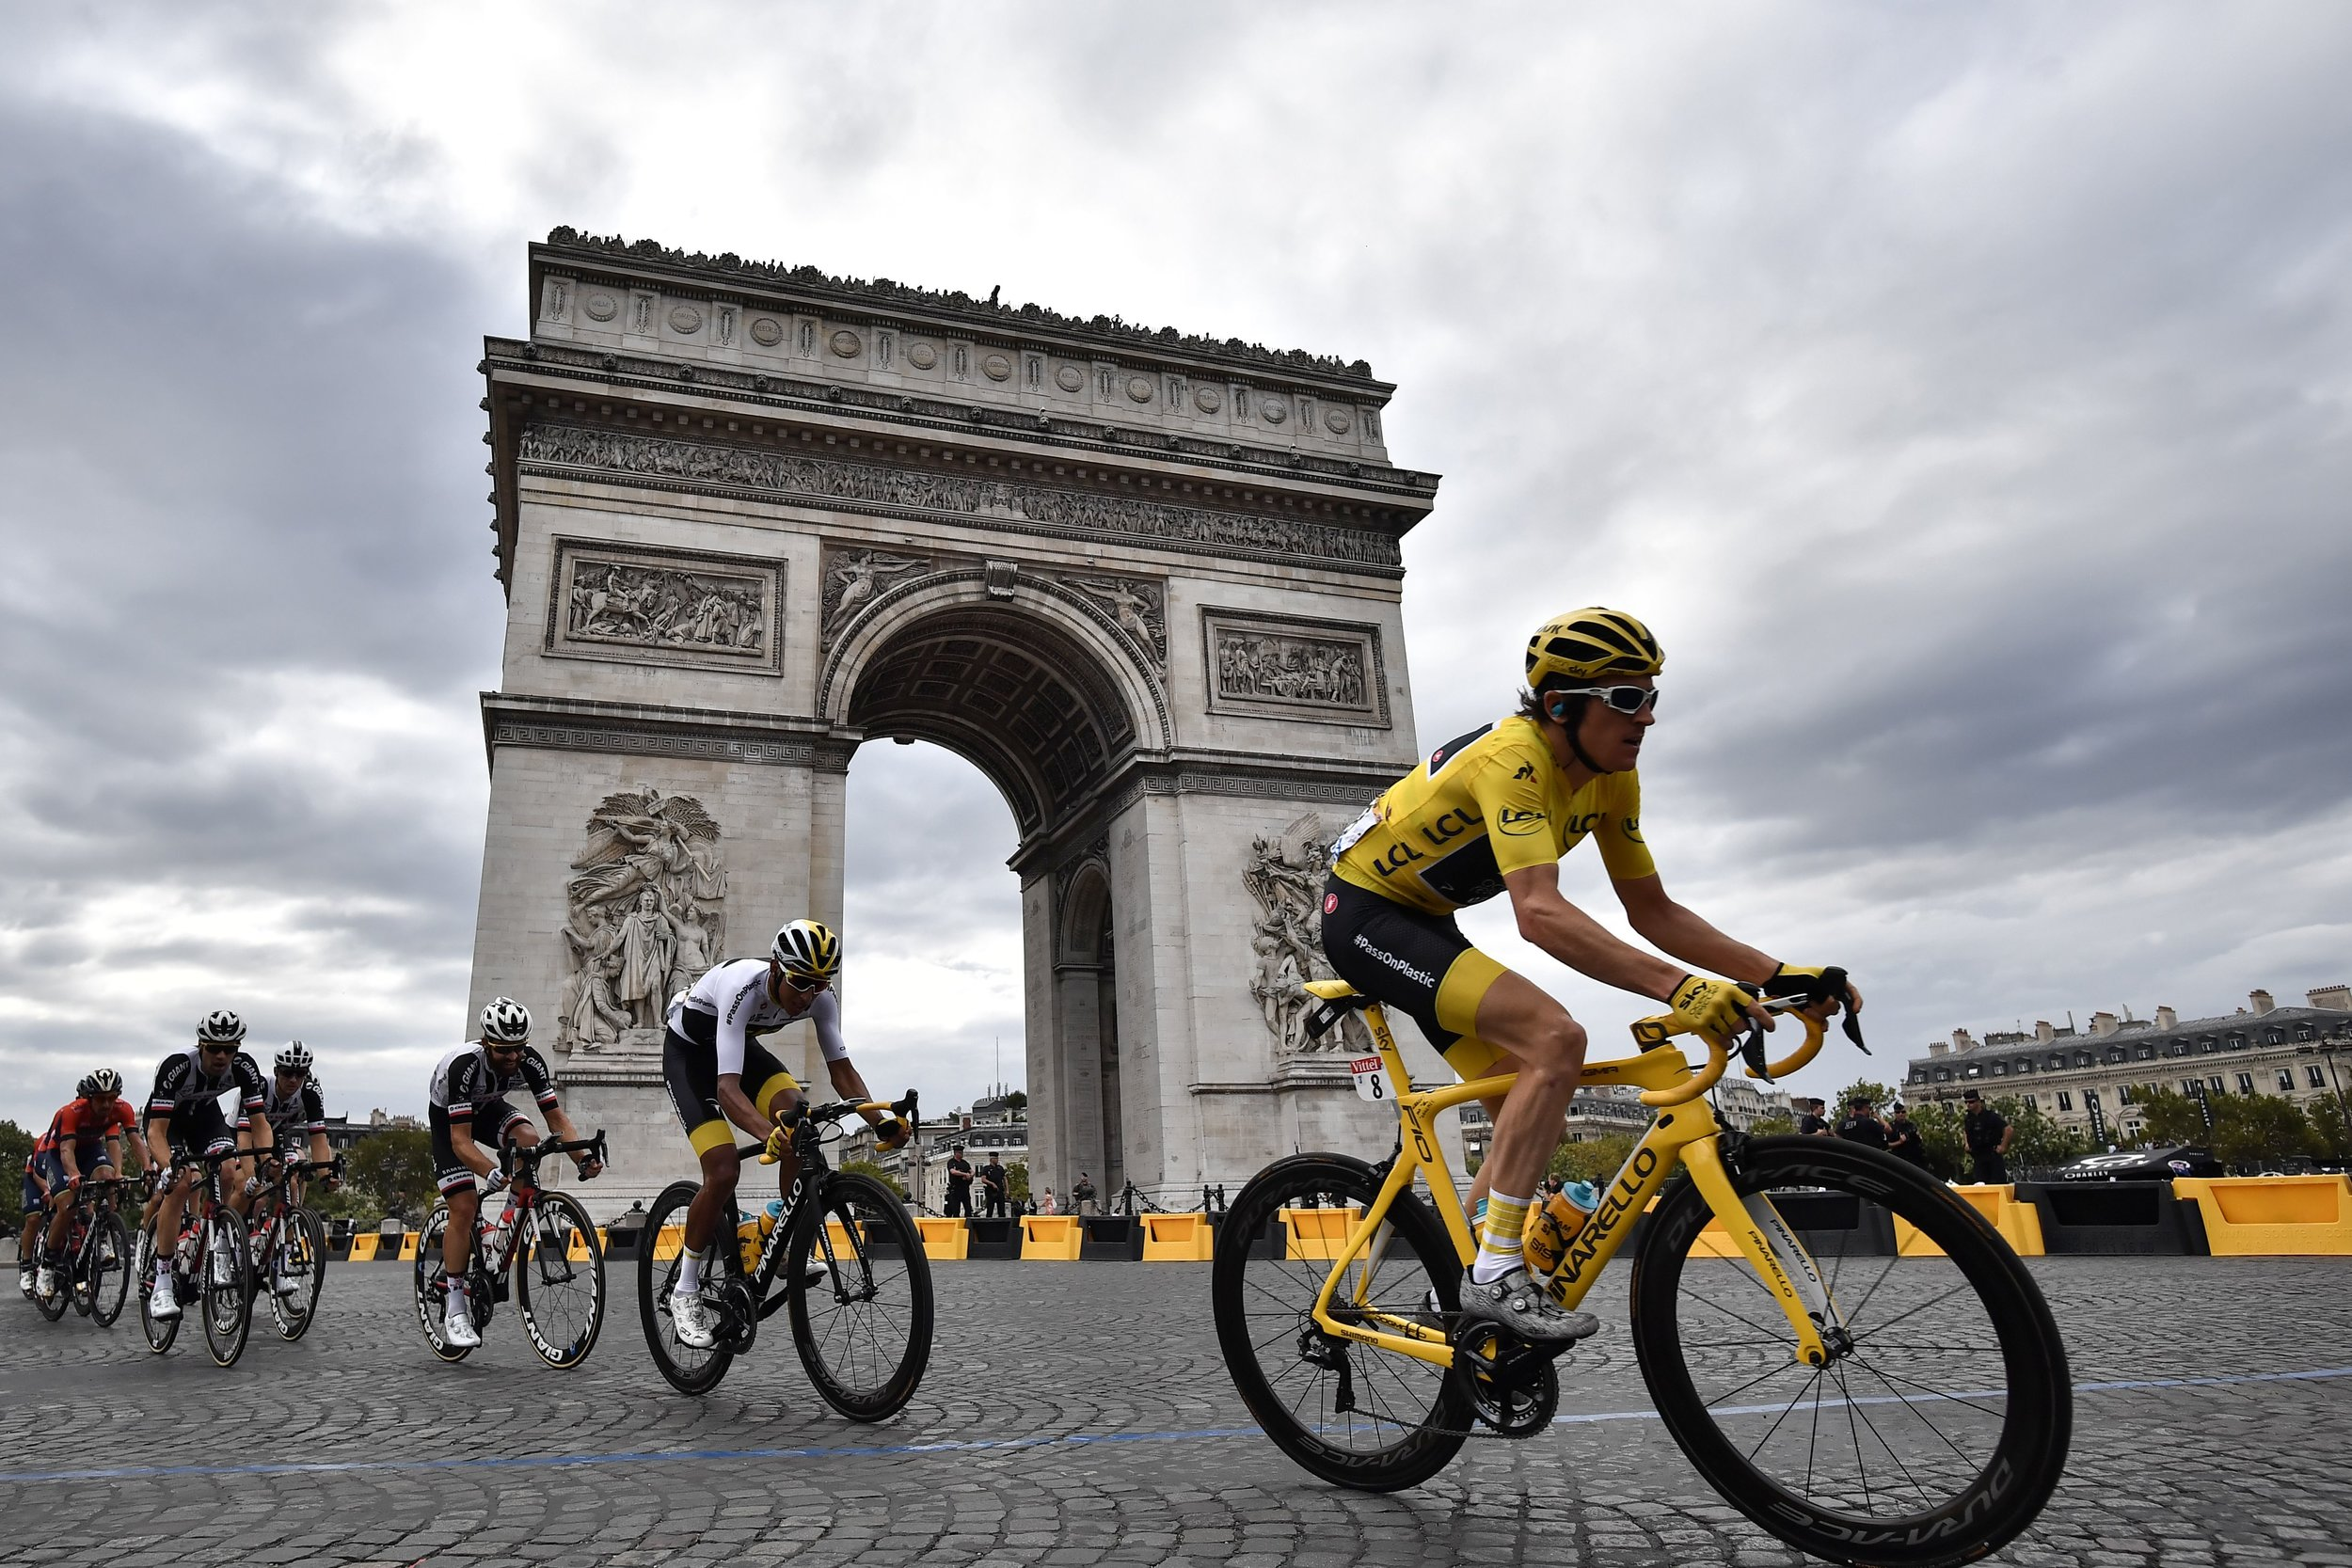 Last year's champion Geraint Thomas leads the way in yellow on the final stage (Getty Images)